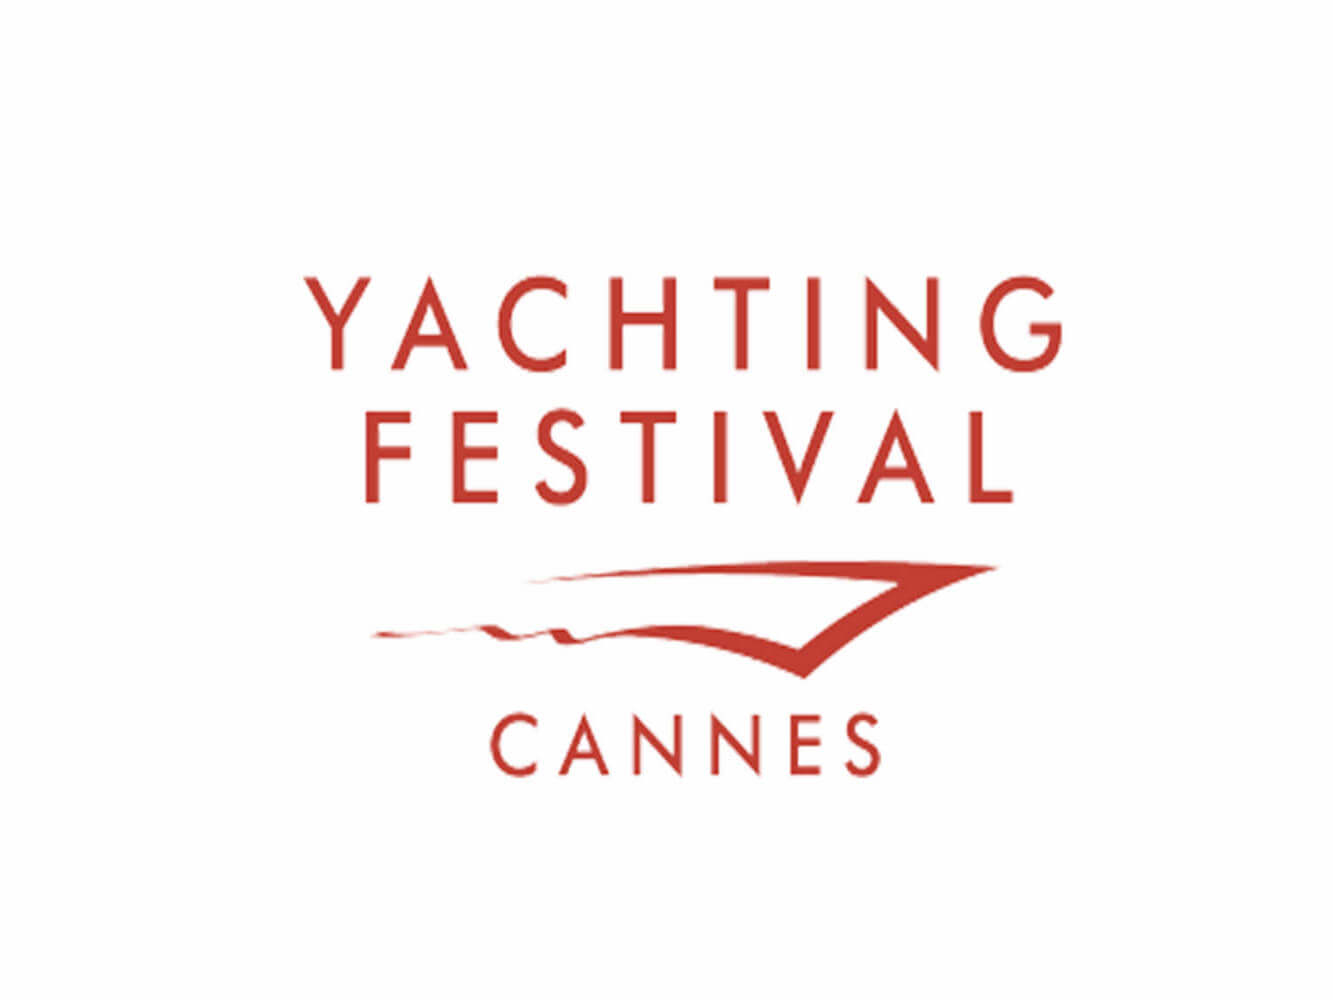 Cannes Yachting Festival 2021